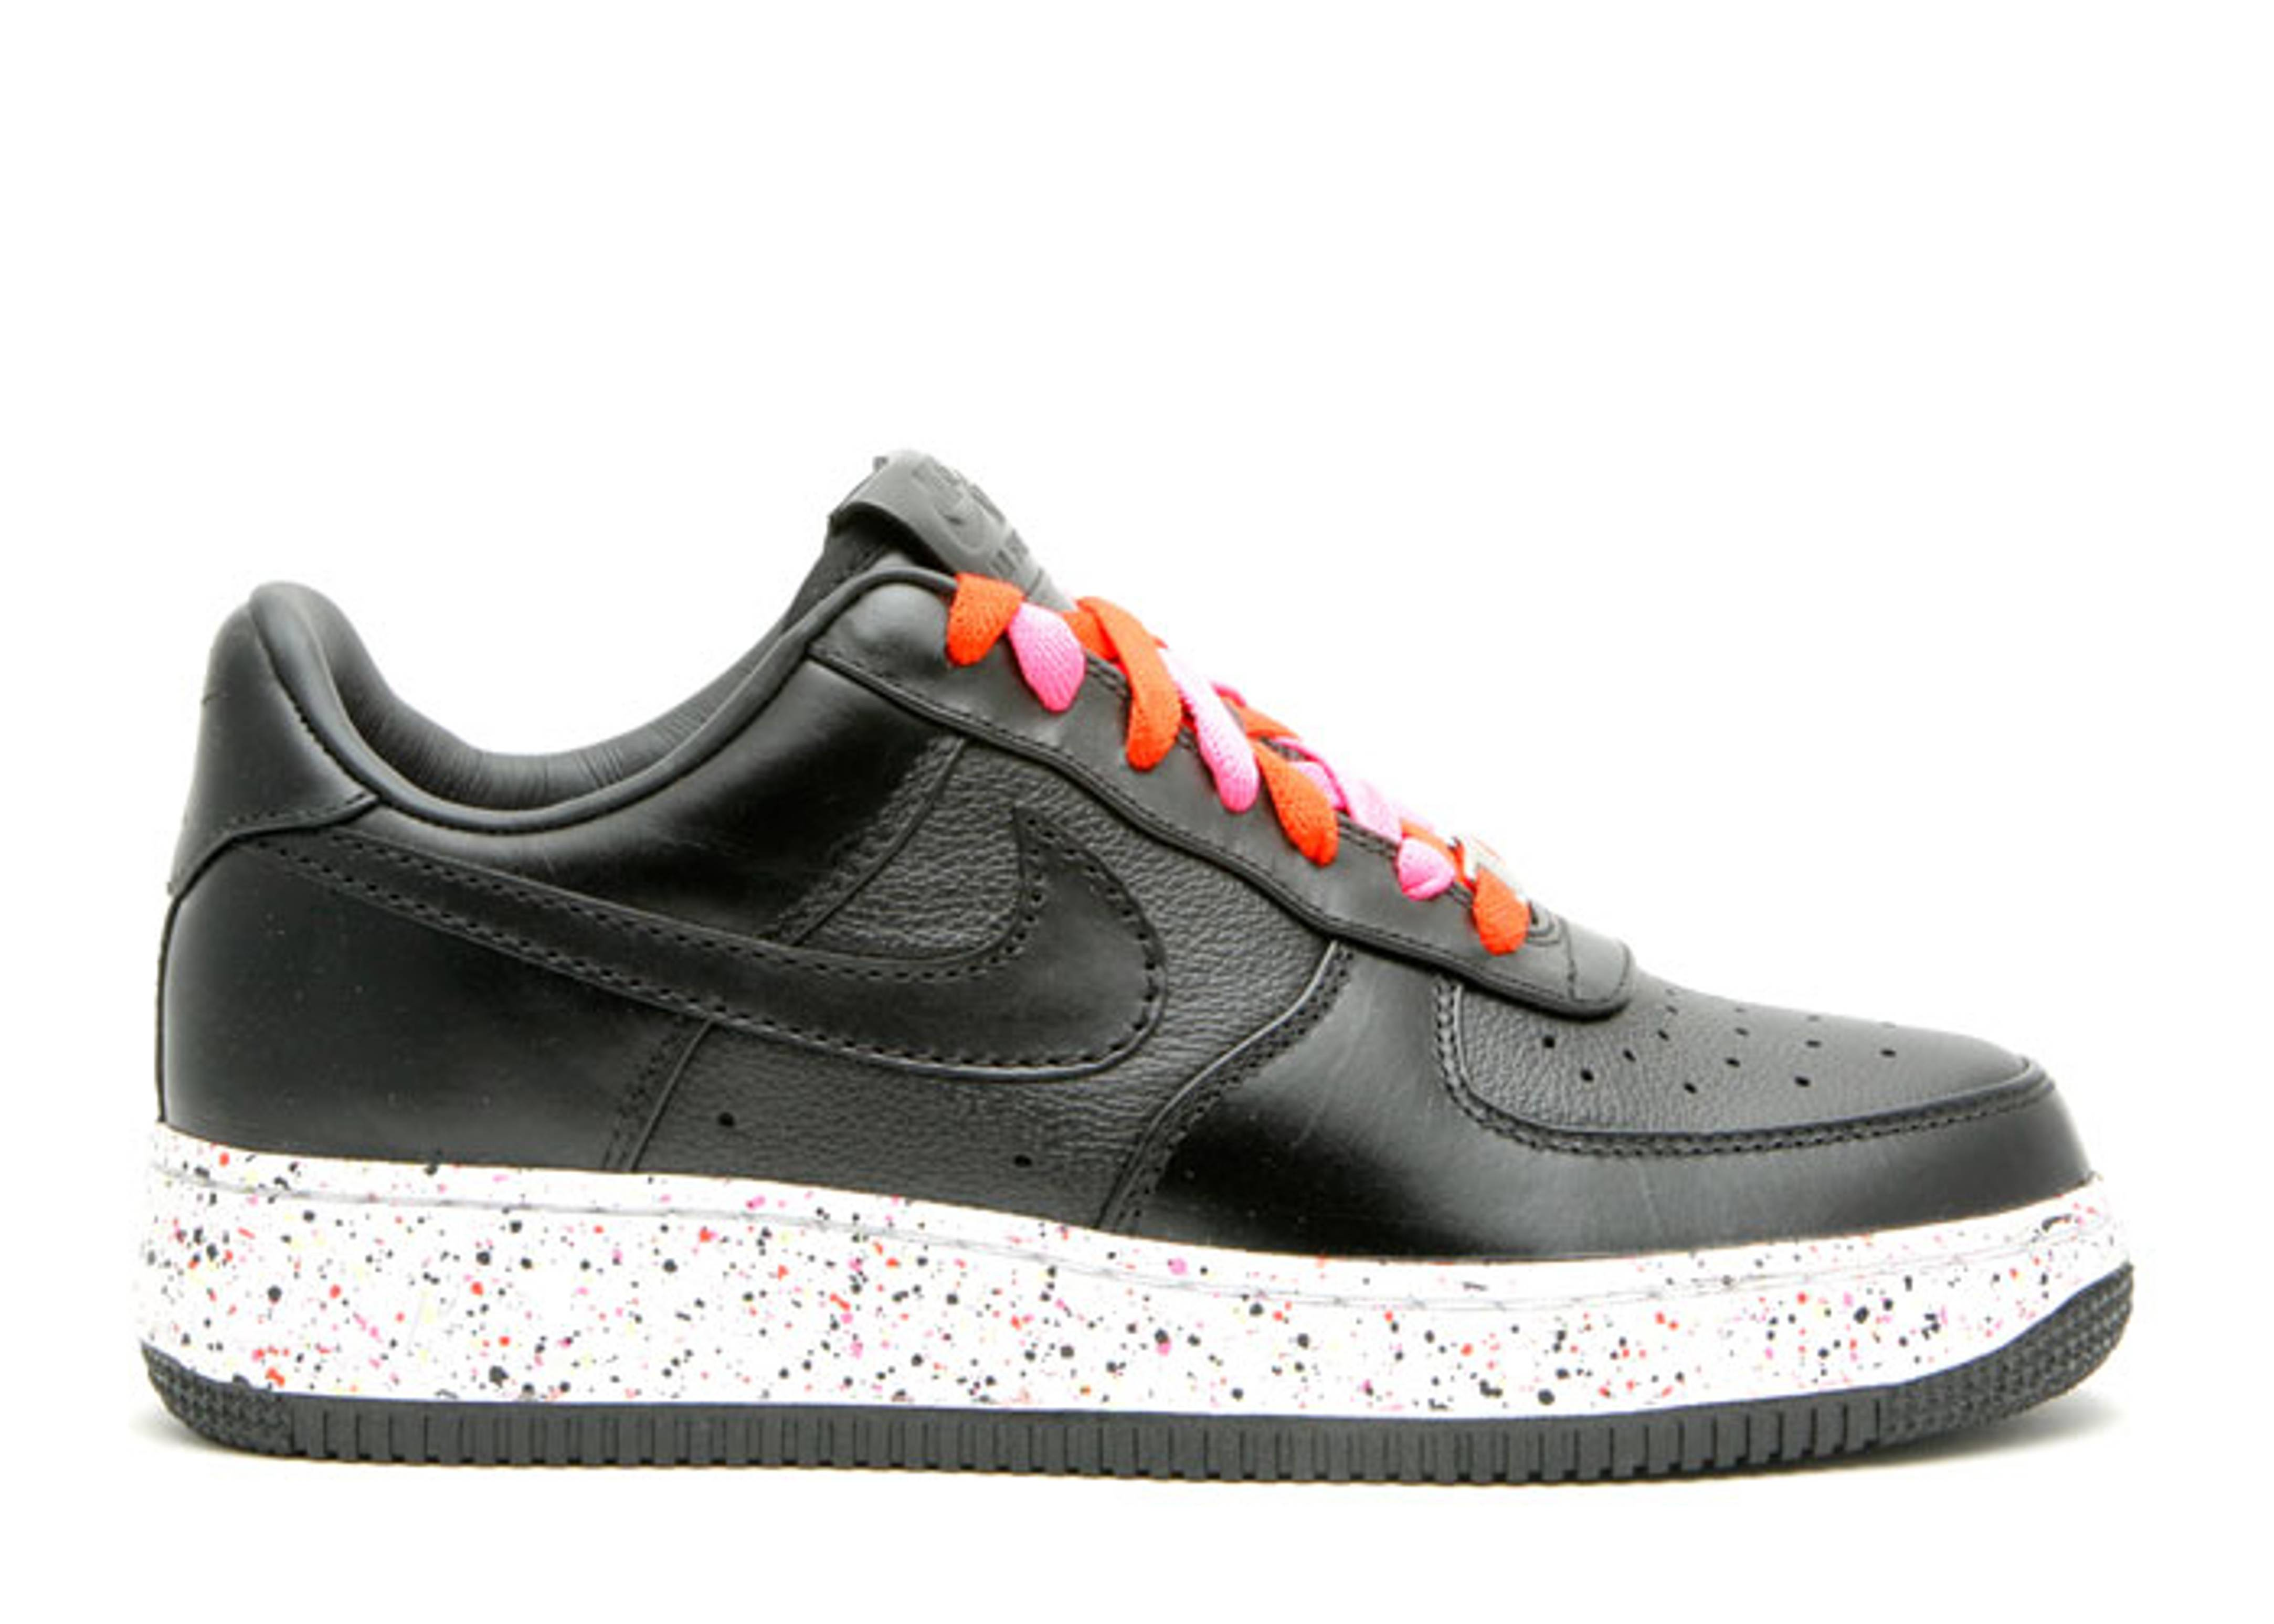 w's air force 1 supreme